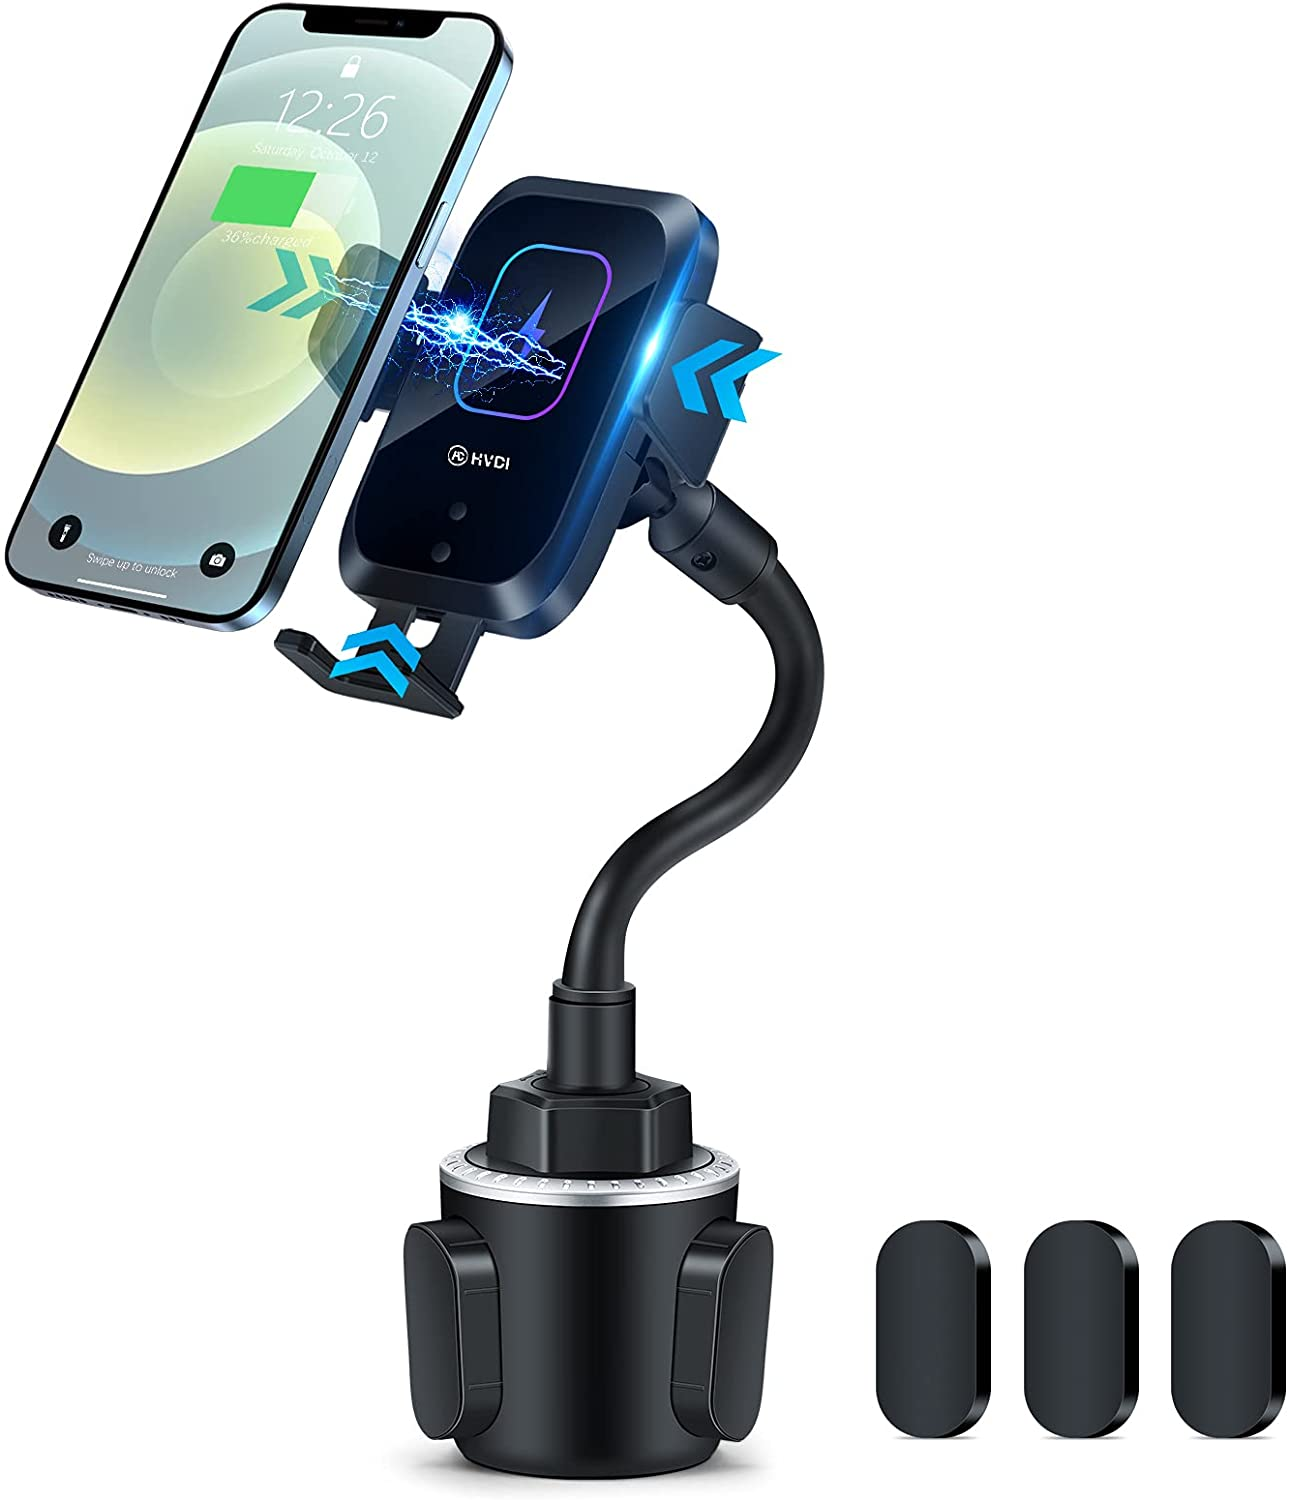 Piosoo Wireless Car Charger-Cup Holder Phone Mount